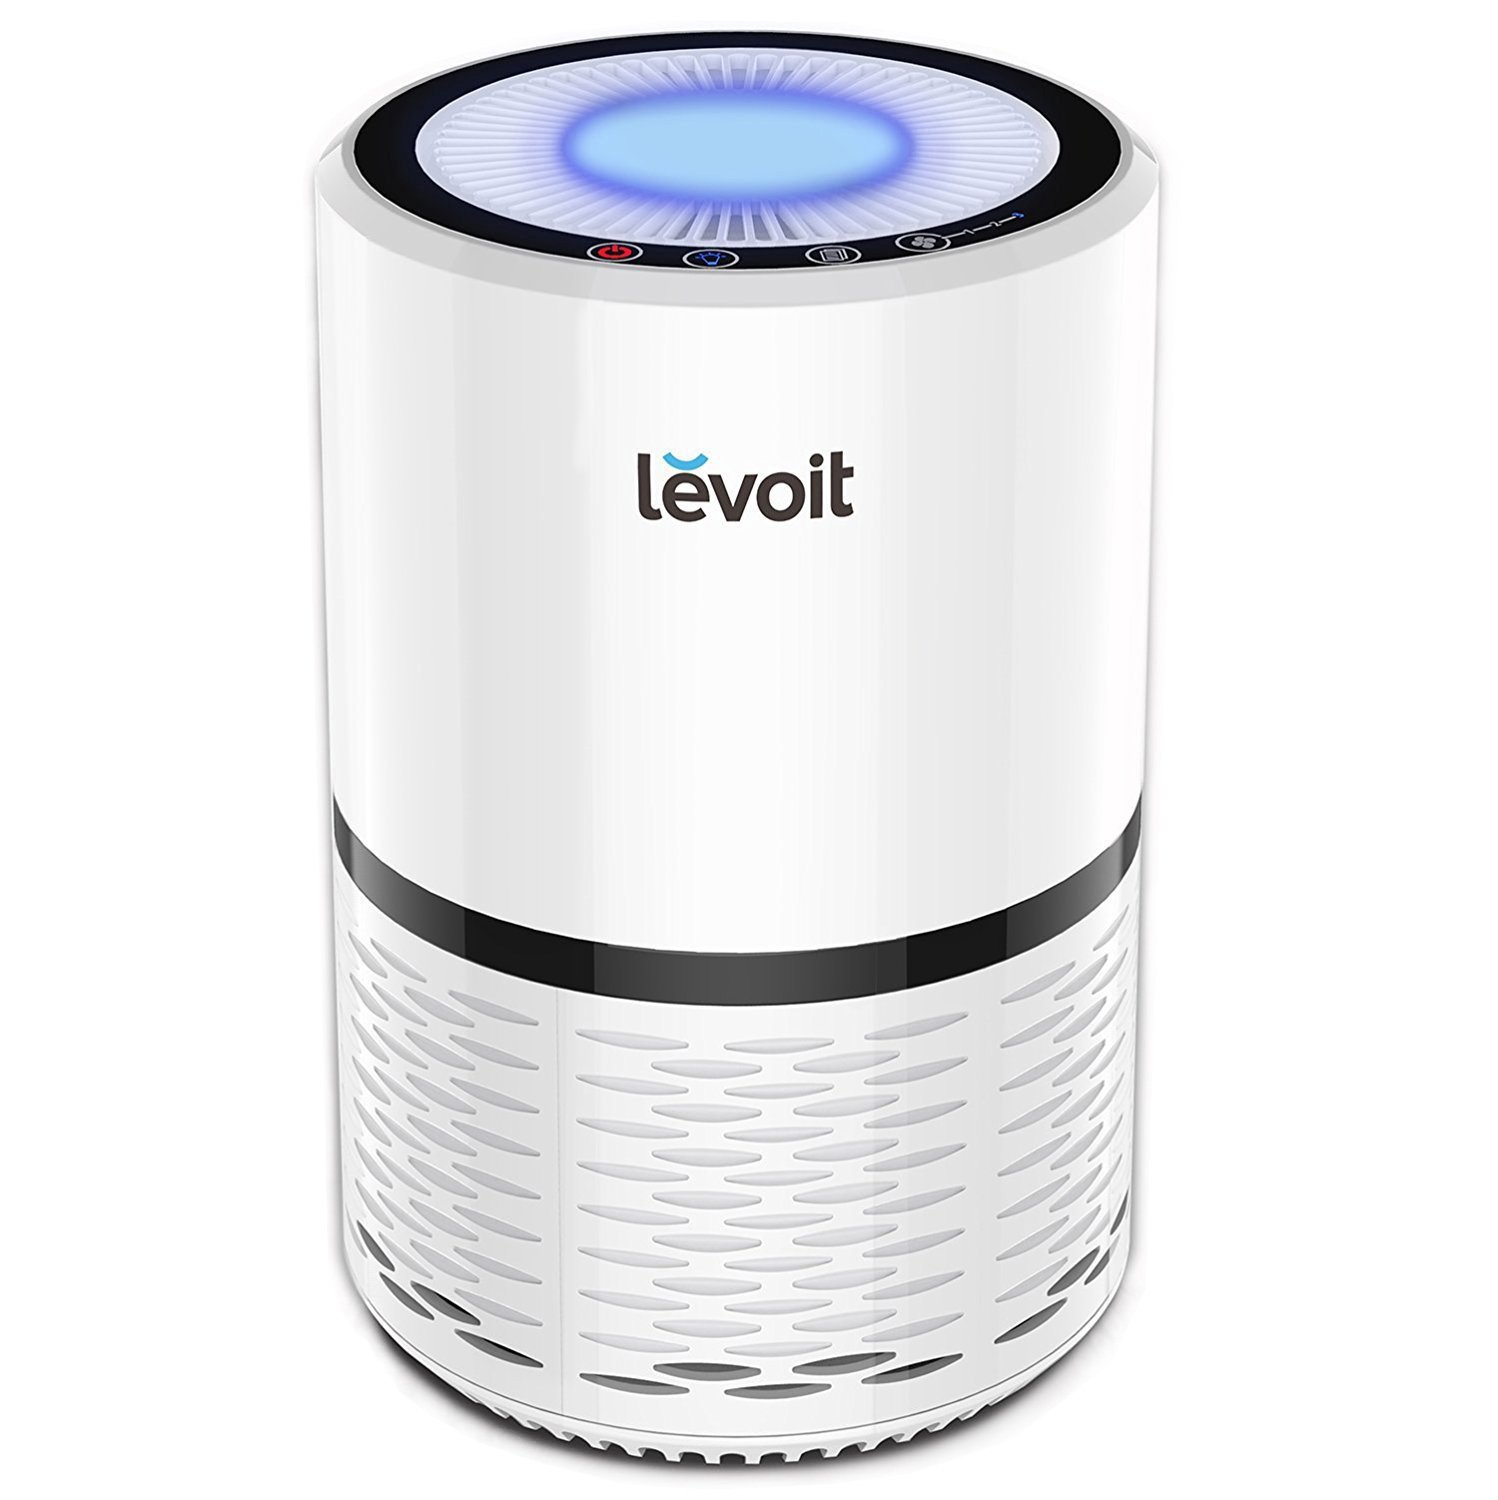 Levoit LV-H132 Air Purifier Filtration with True HEPA Filter